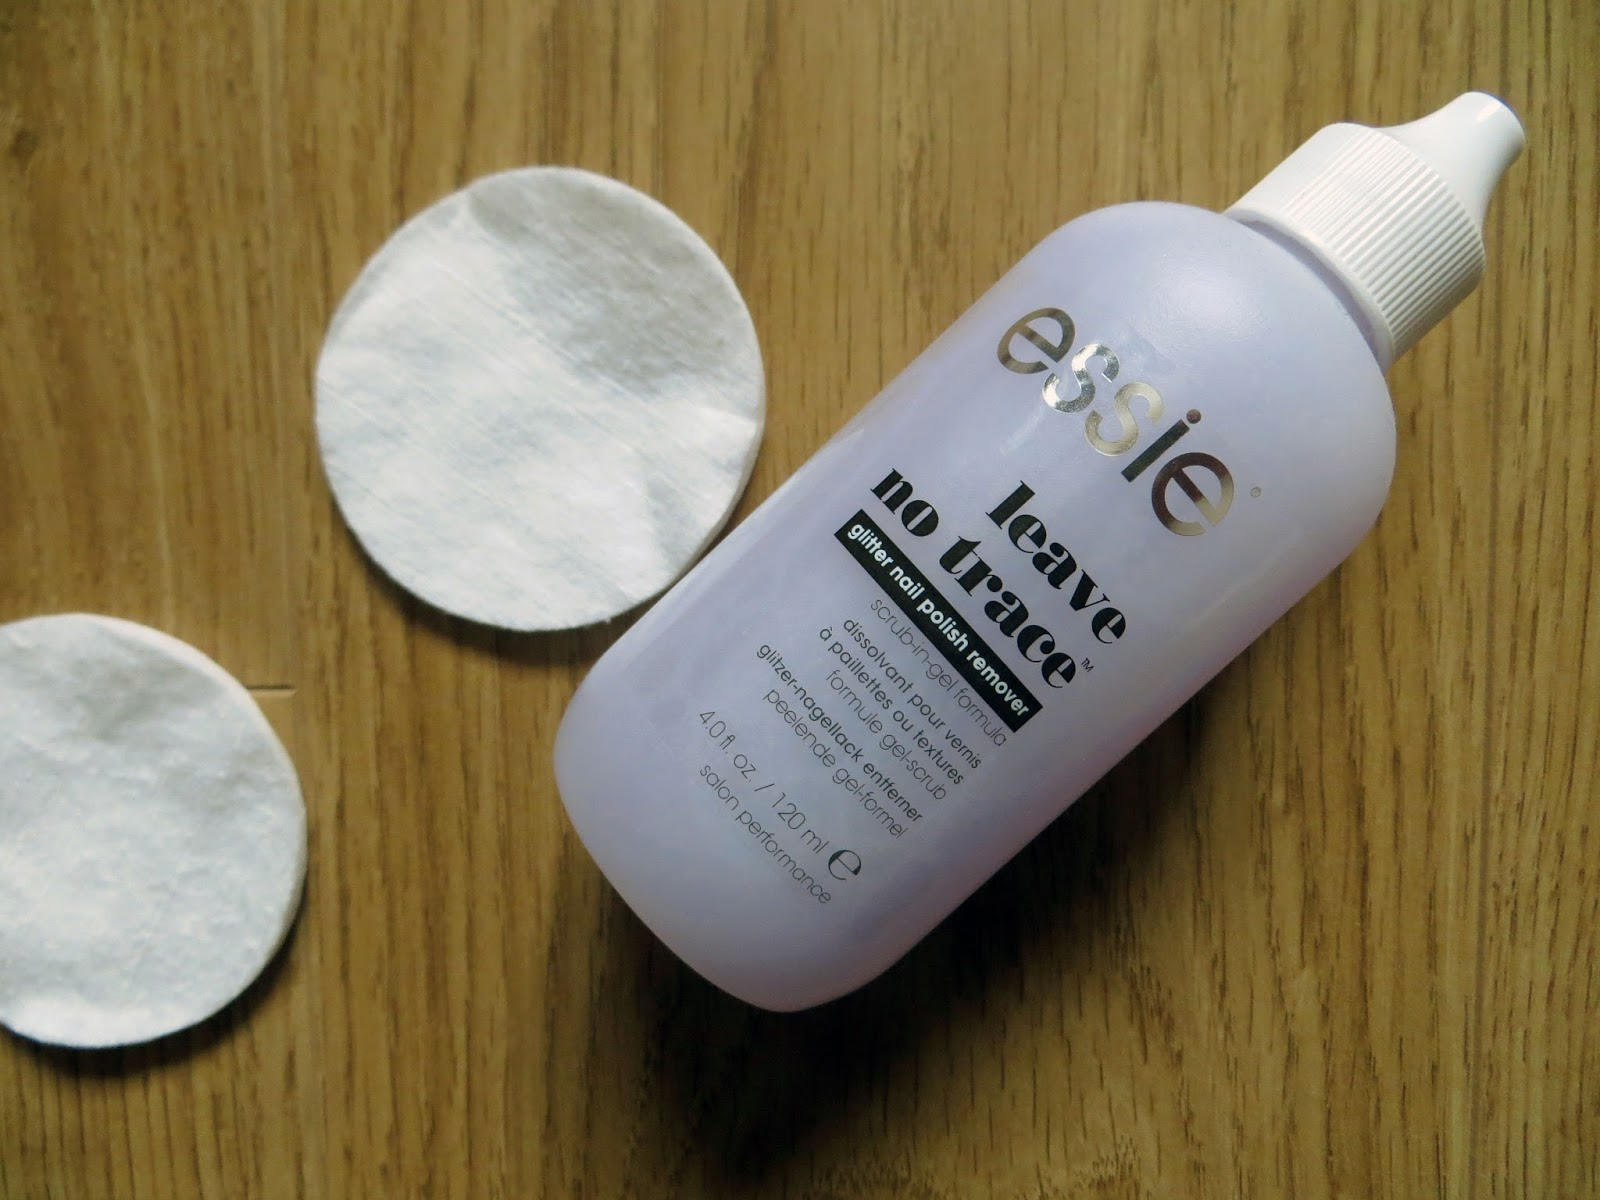 Dainty Ditsy: Disappointing Product - Essie Leave No Trace Glitter ...